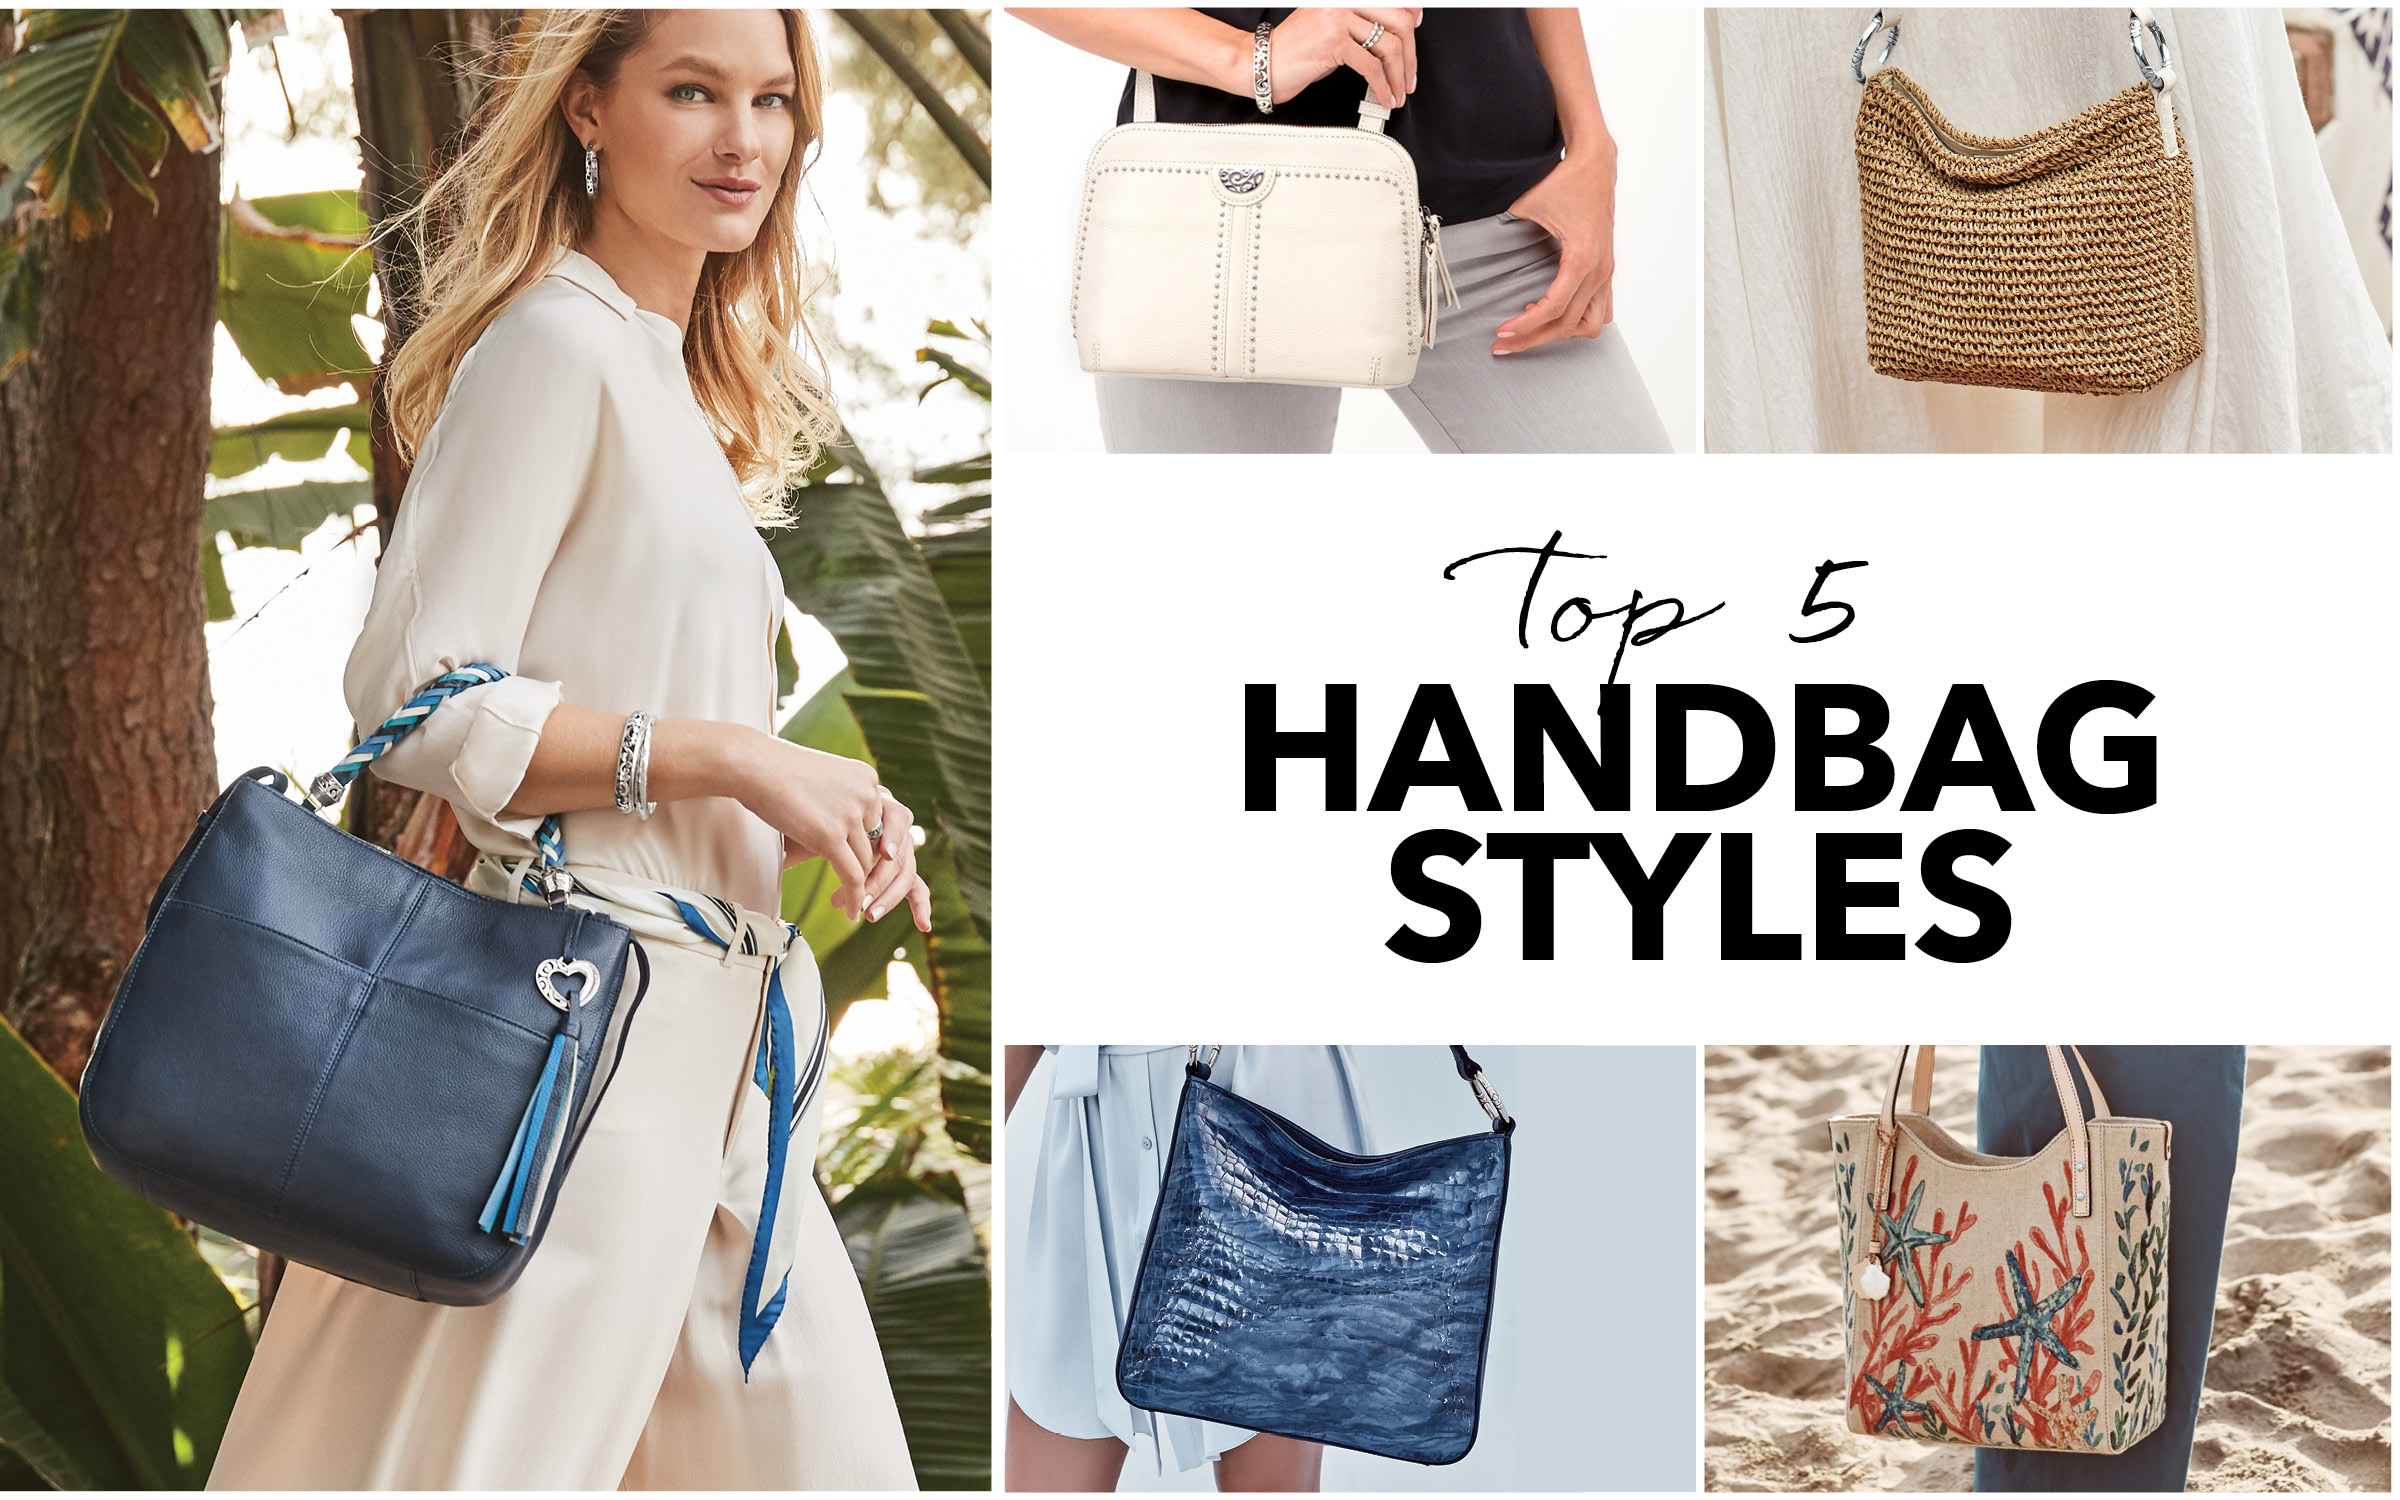 Model carrying 5 different handbag styles